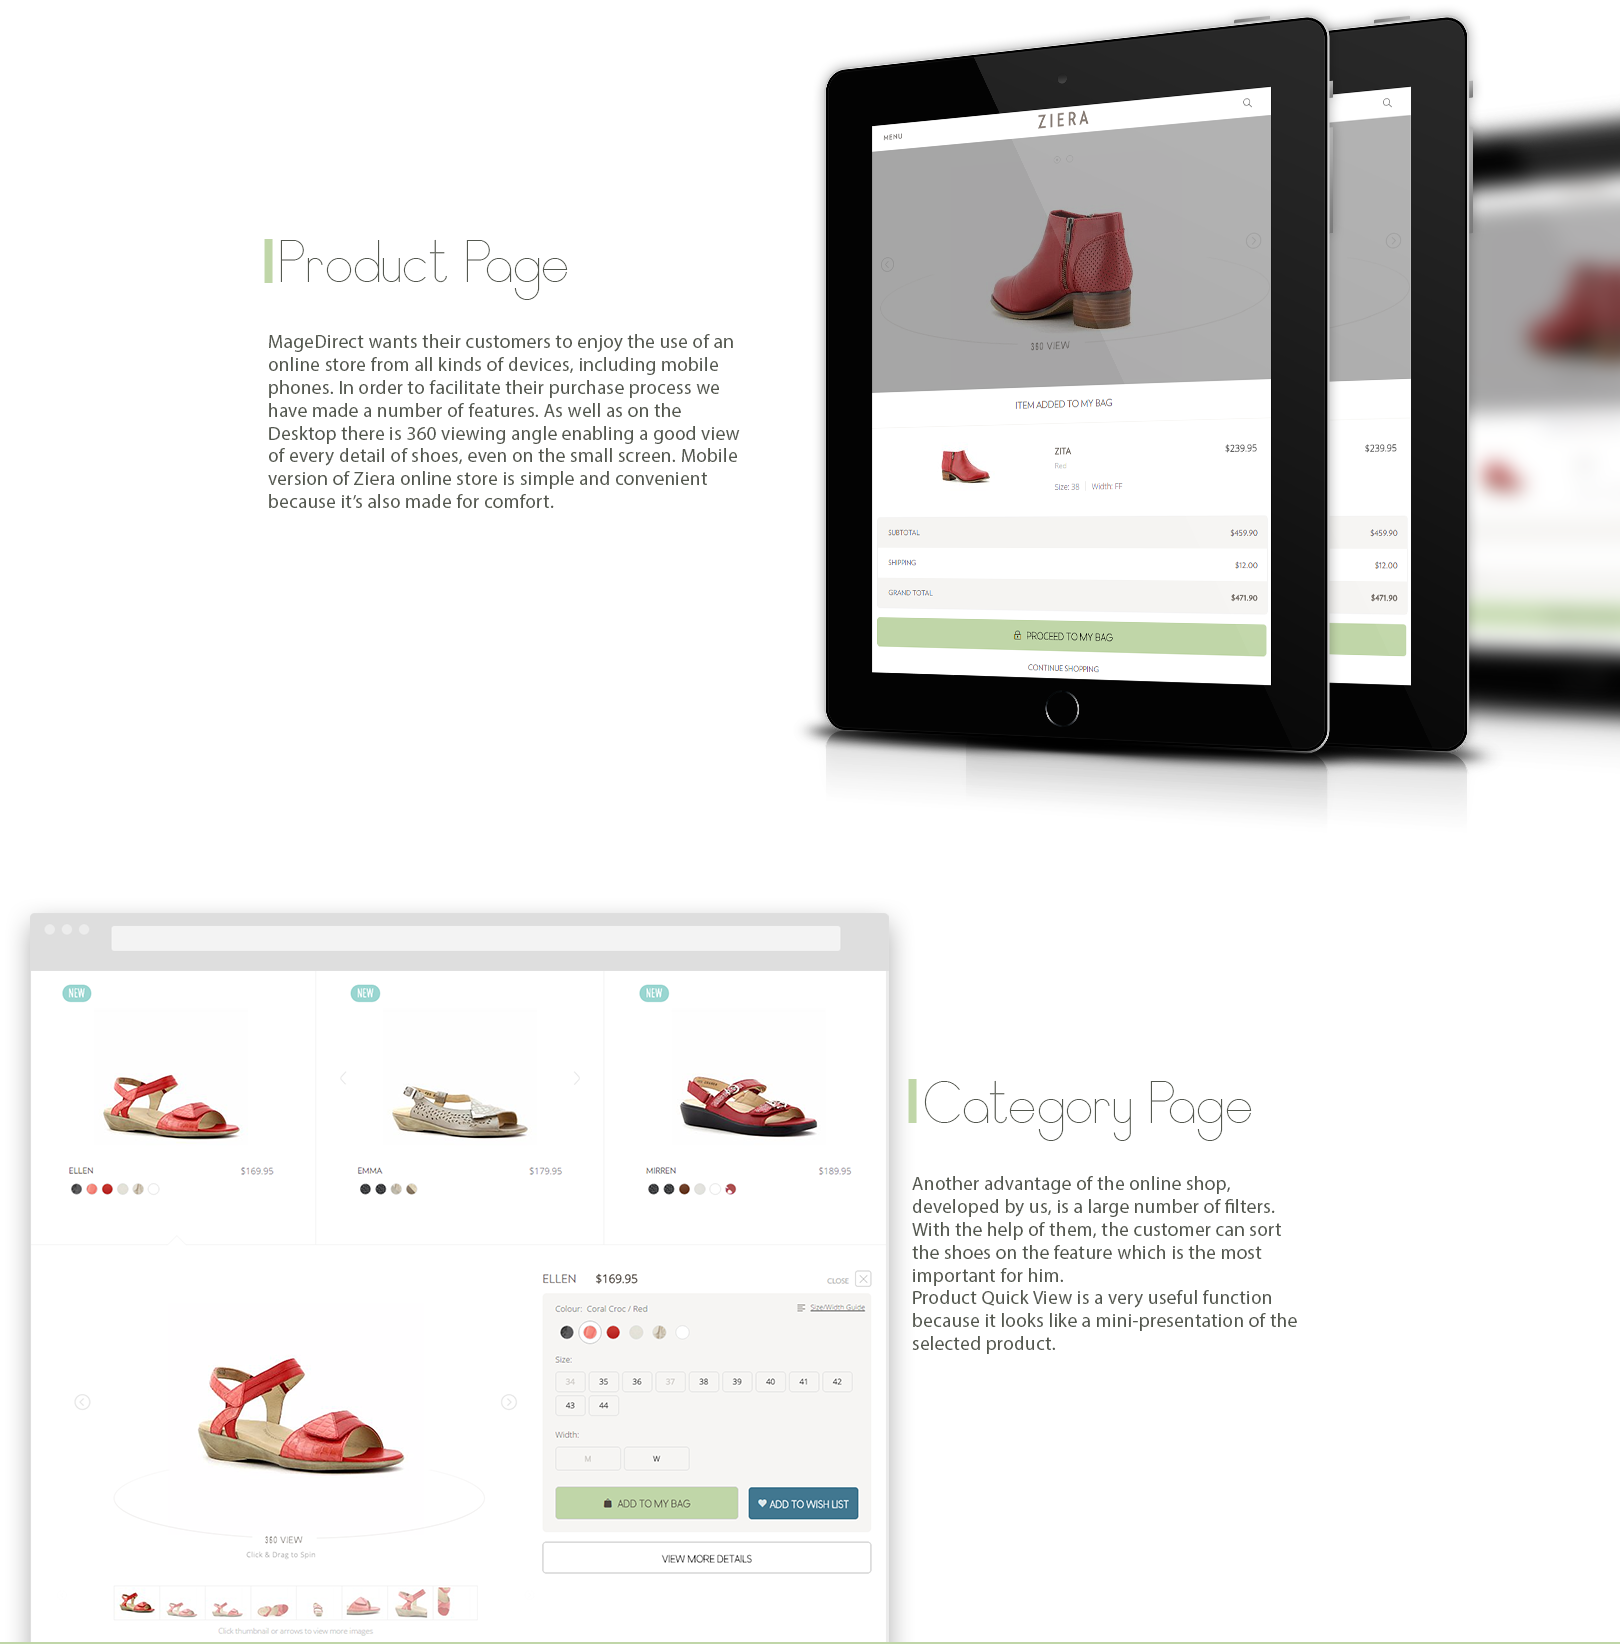 product page & category page